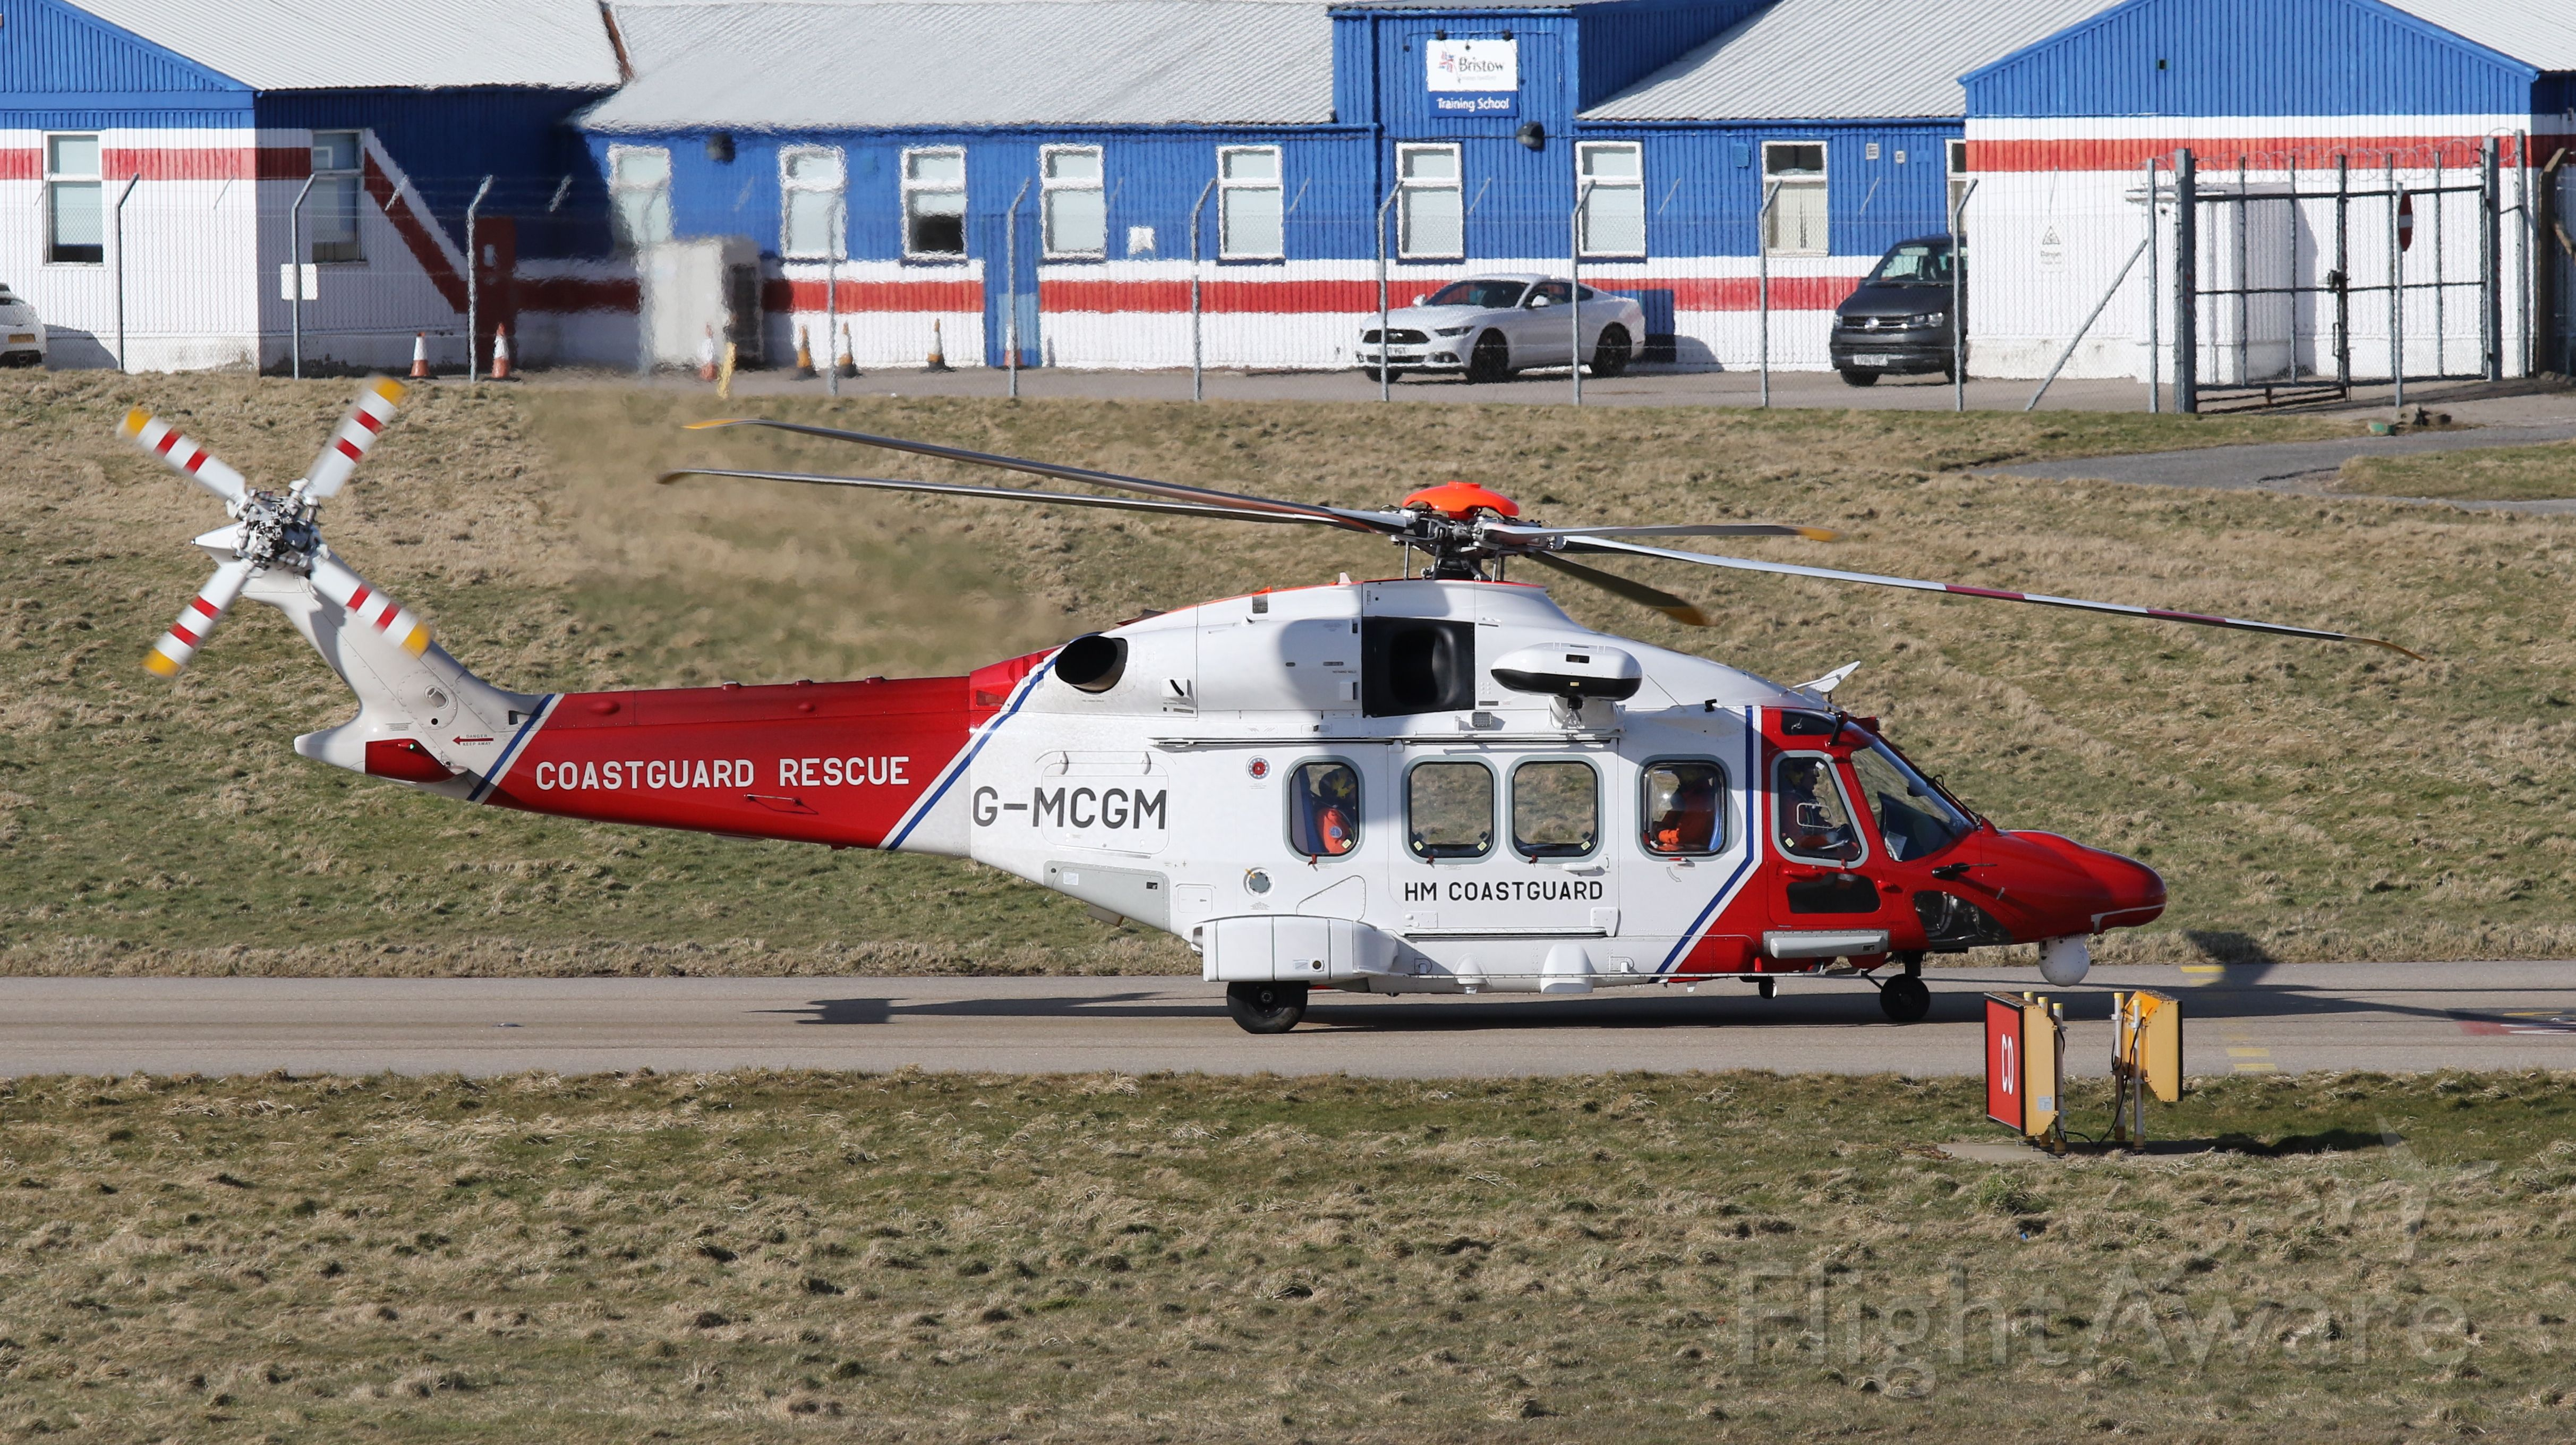 AgustaWestland AW189 (G-MCGM) - Marine Coastguard AW189 operated by Bristow departs Aberdeen for Inverness on March 11, 2020